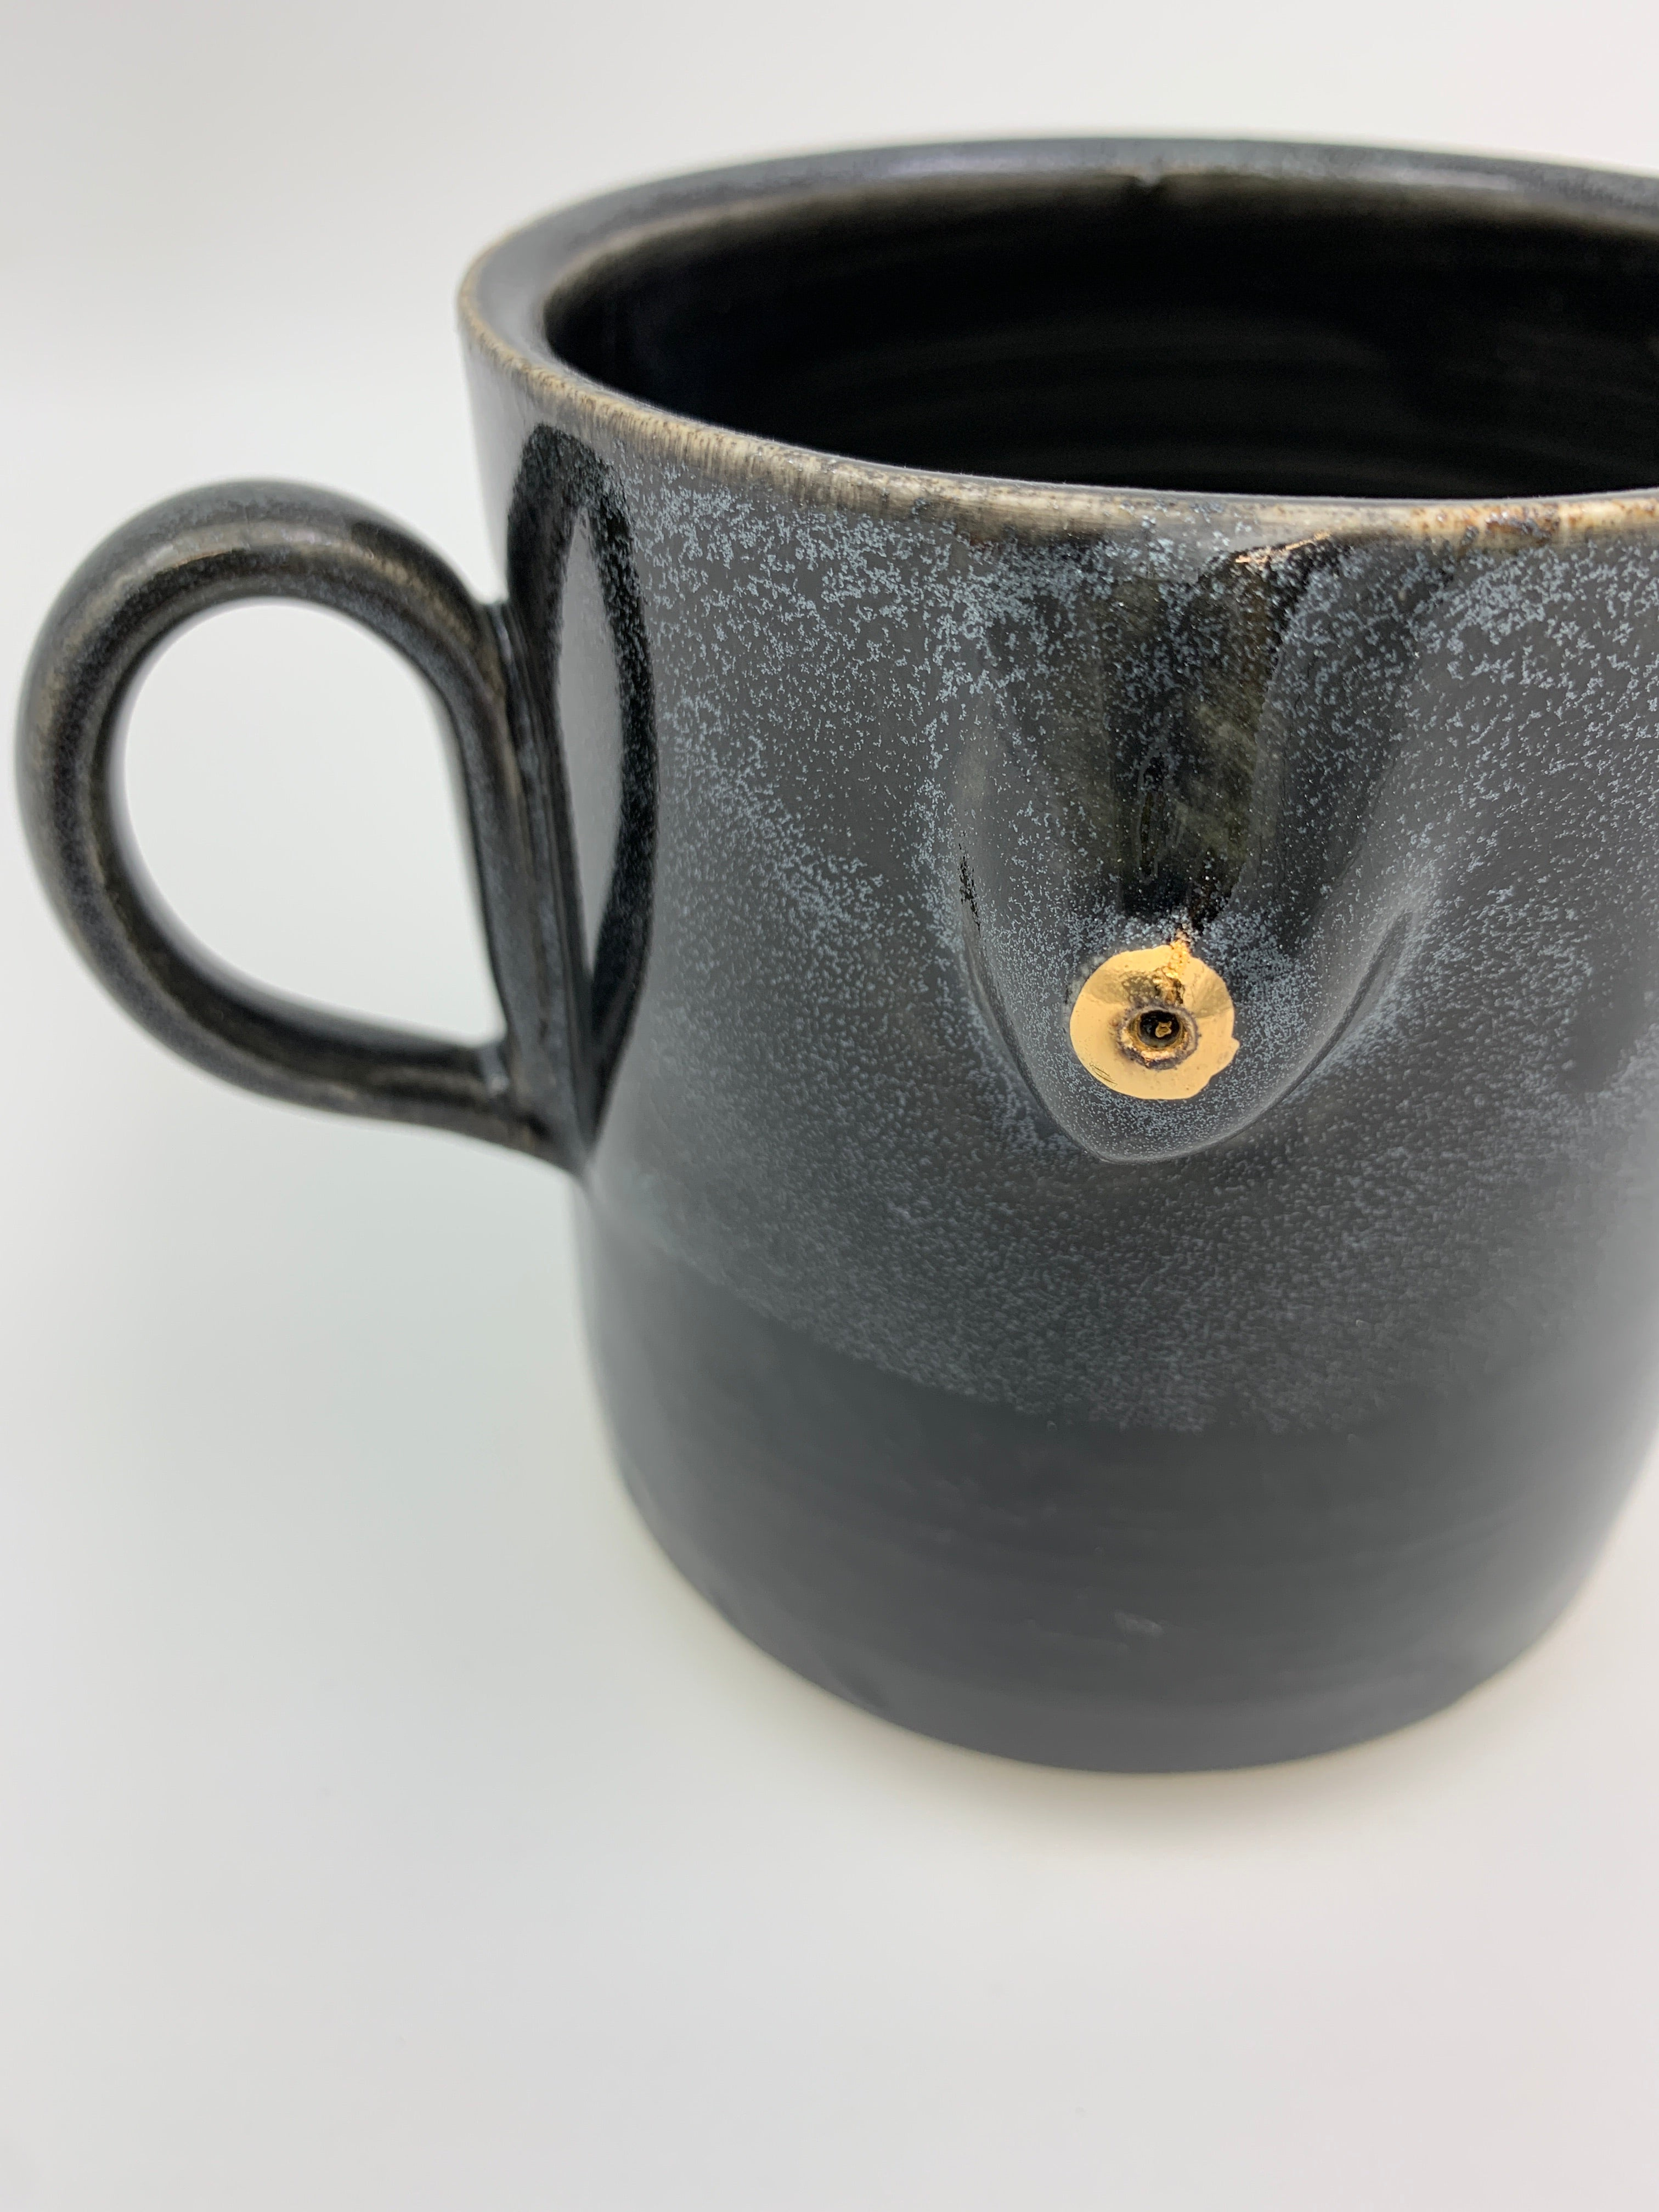 ✨GOLD NIPPLE✨Boob Mug  - Gloss Black w/ Cosmic Dip